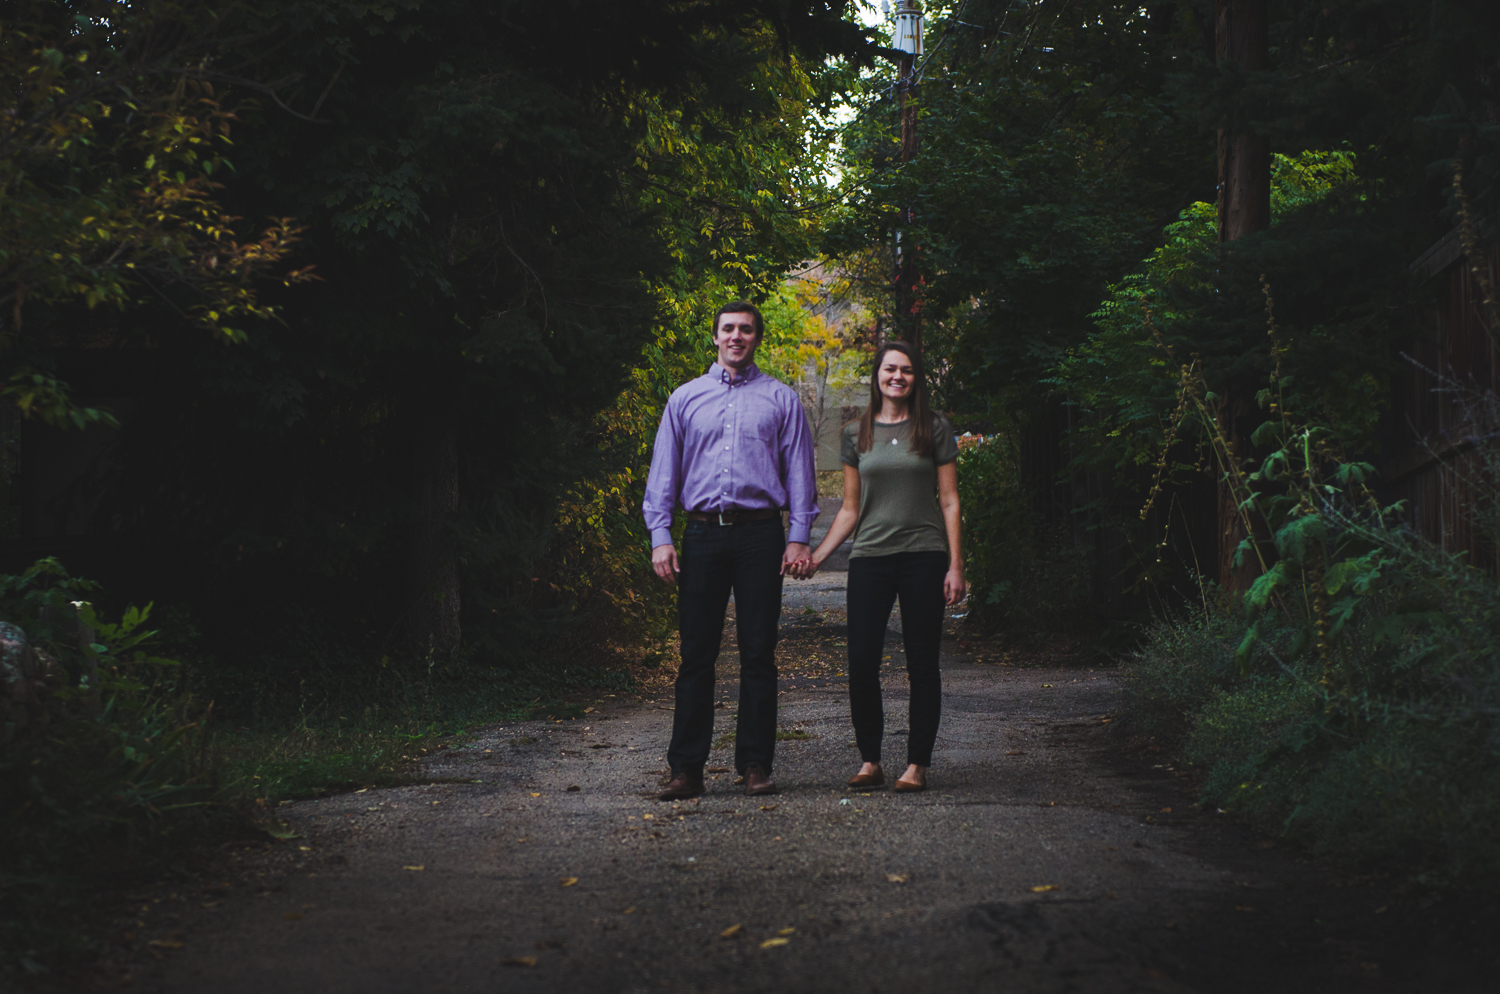 Ann&Beau-Engagements-BLOG-6731.jpg